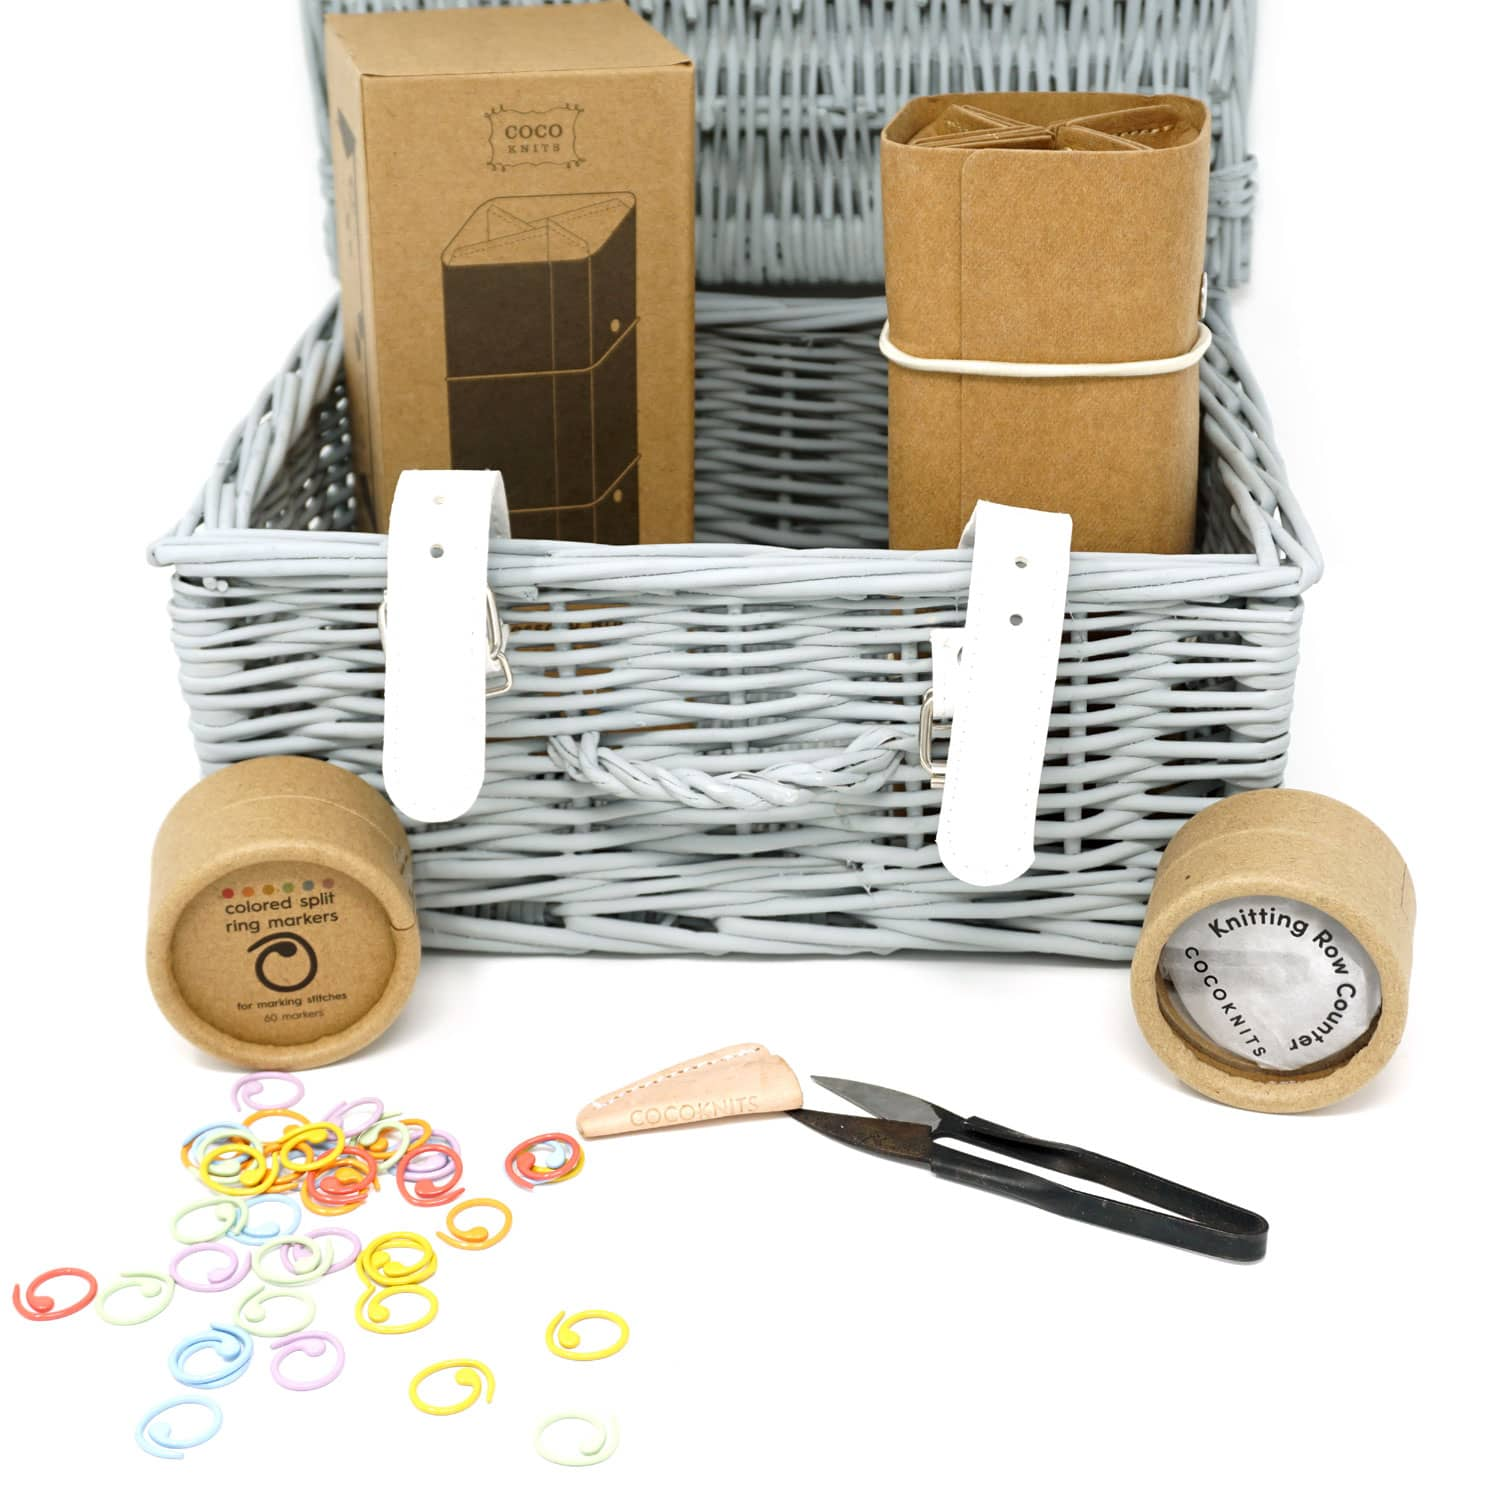 Cocoknits Lovers Christmas Hamper  with accessory roll, row counter, yarn snips and coloured opening stitch markers | Yarn Worx